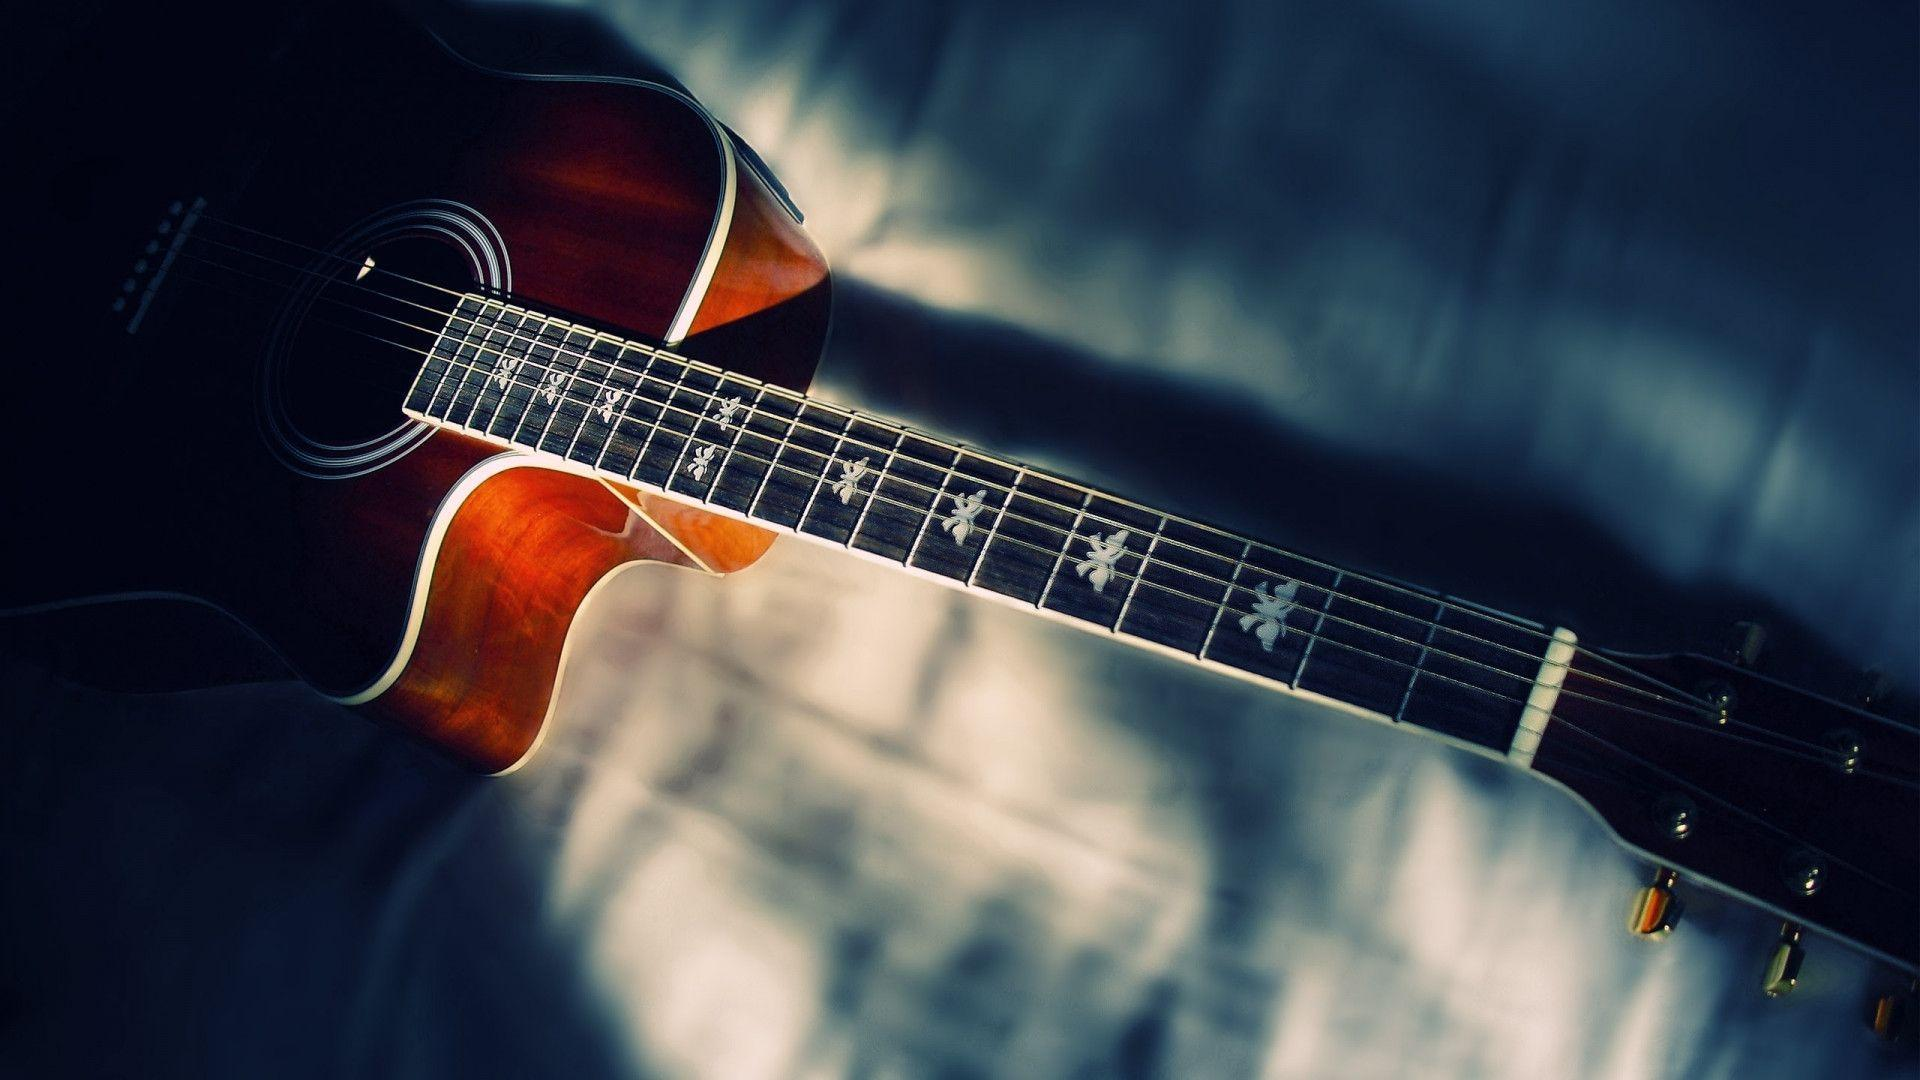 Hd Guitar Wallpapers Wallpaper Cave